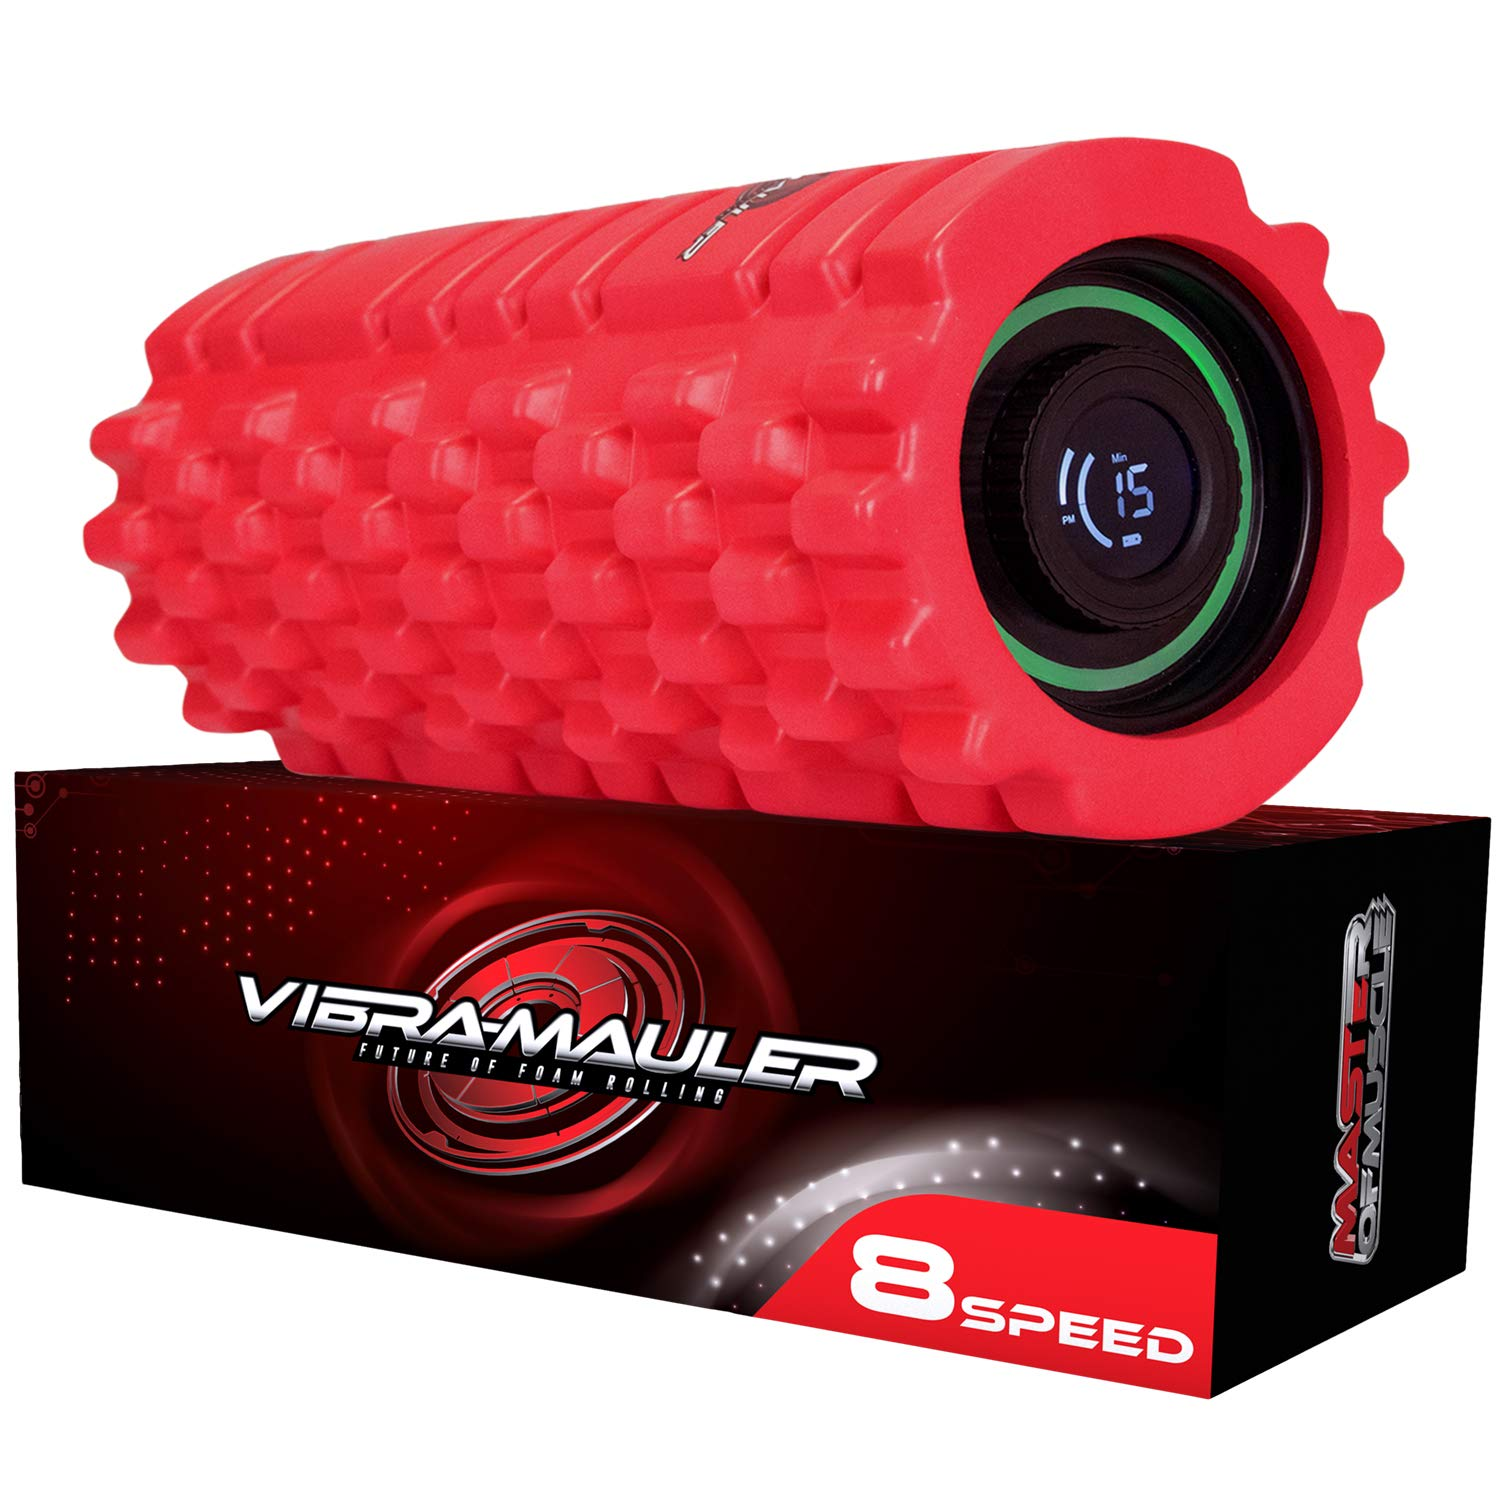 Master of Muscle Vibrating Foam Roller